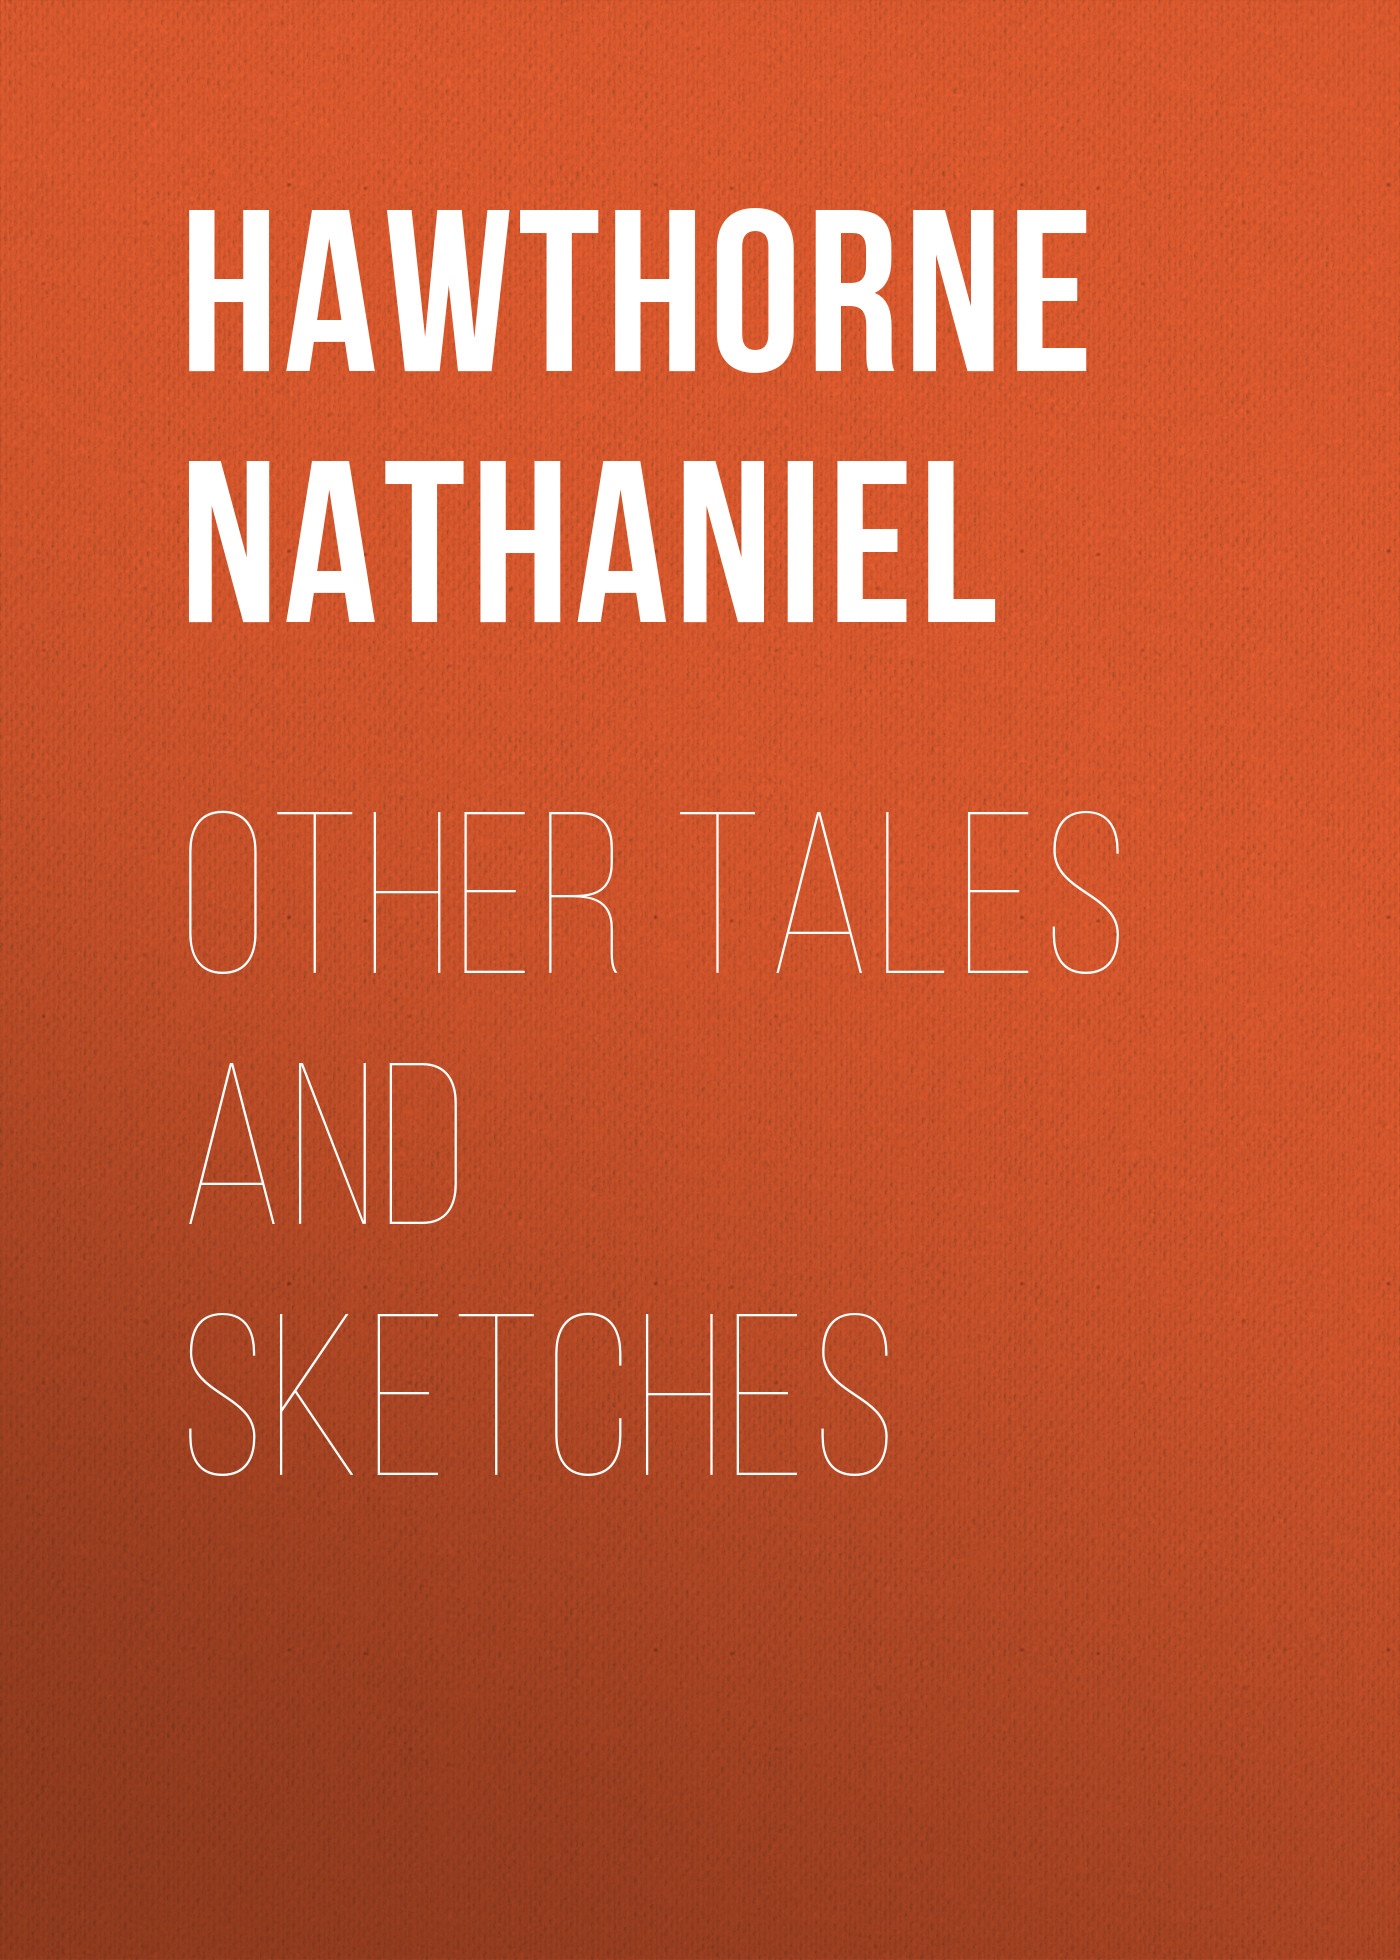 Hawthorne Nathaniel Other Tales and Sketches taste and other tales cd